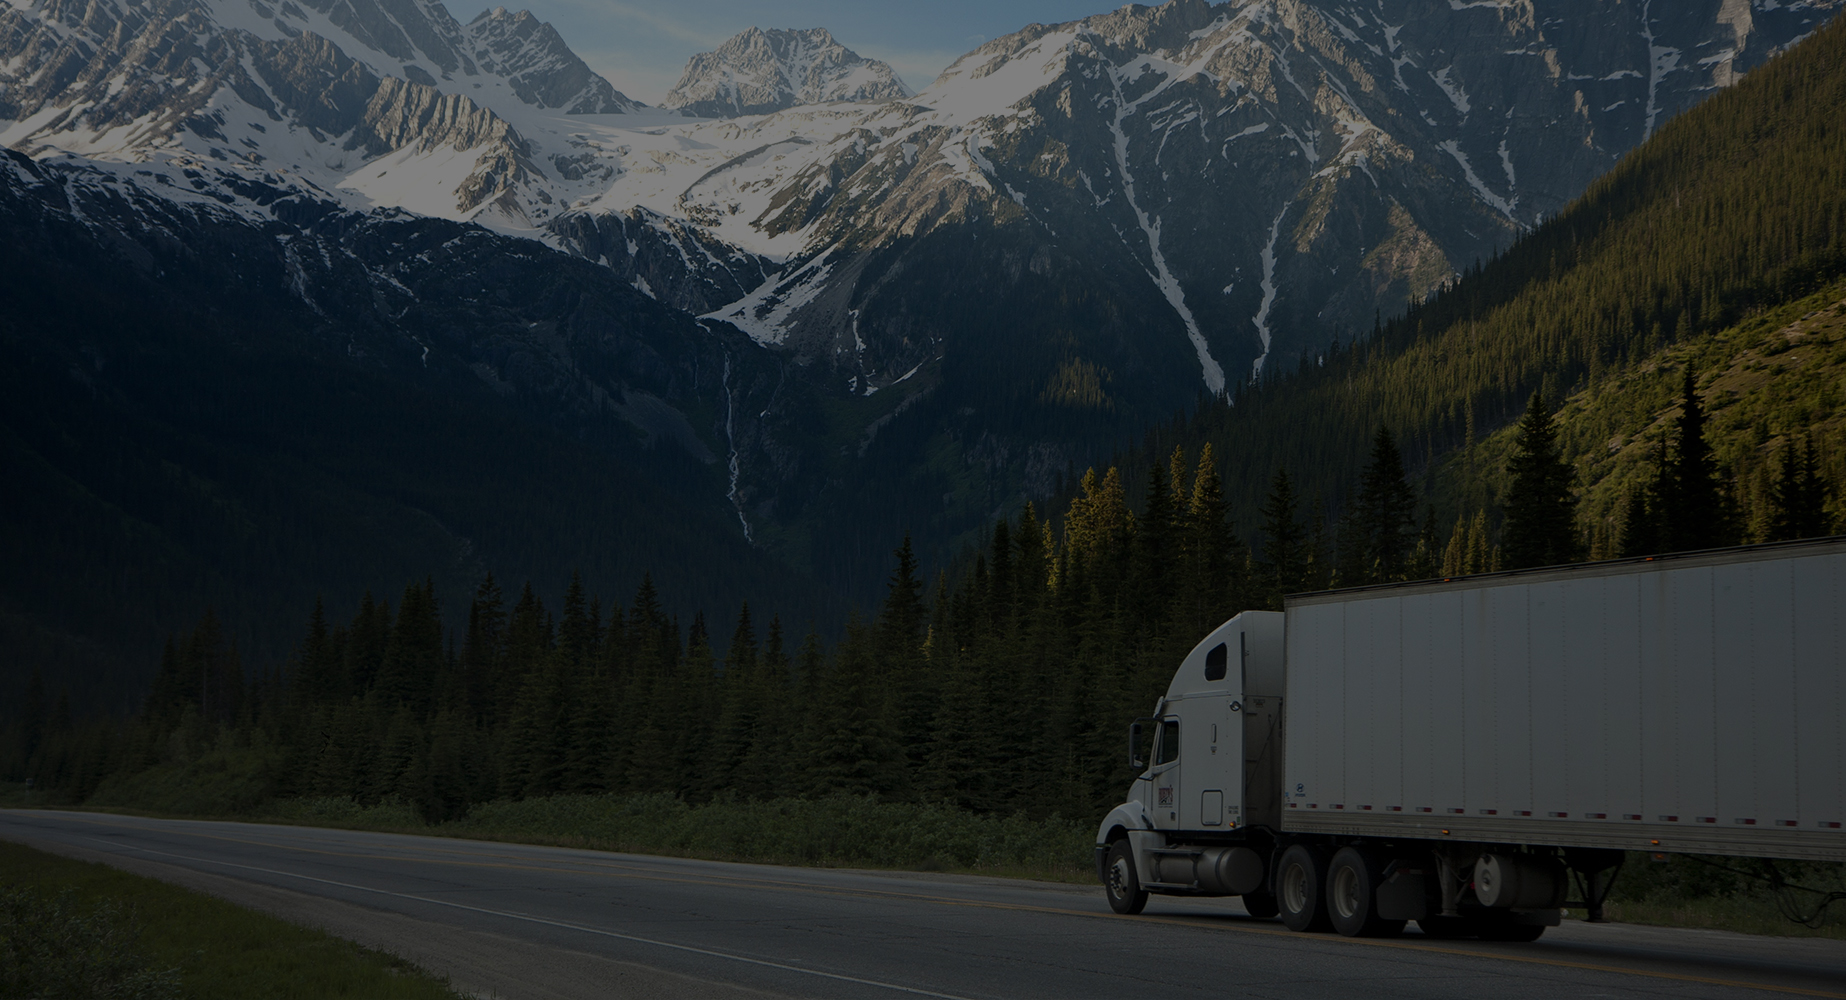 Need help finding the right truck options?